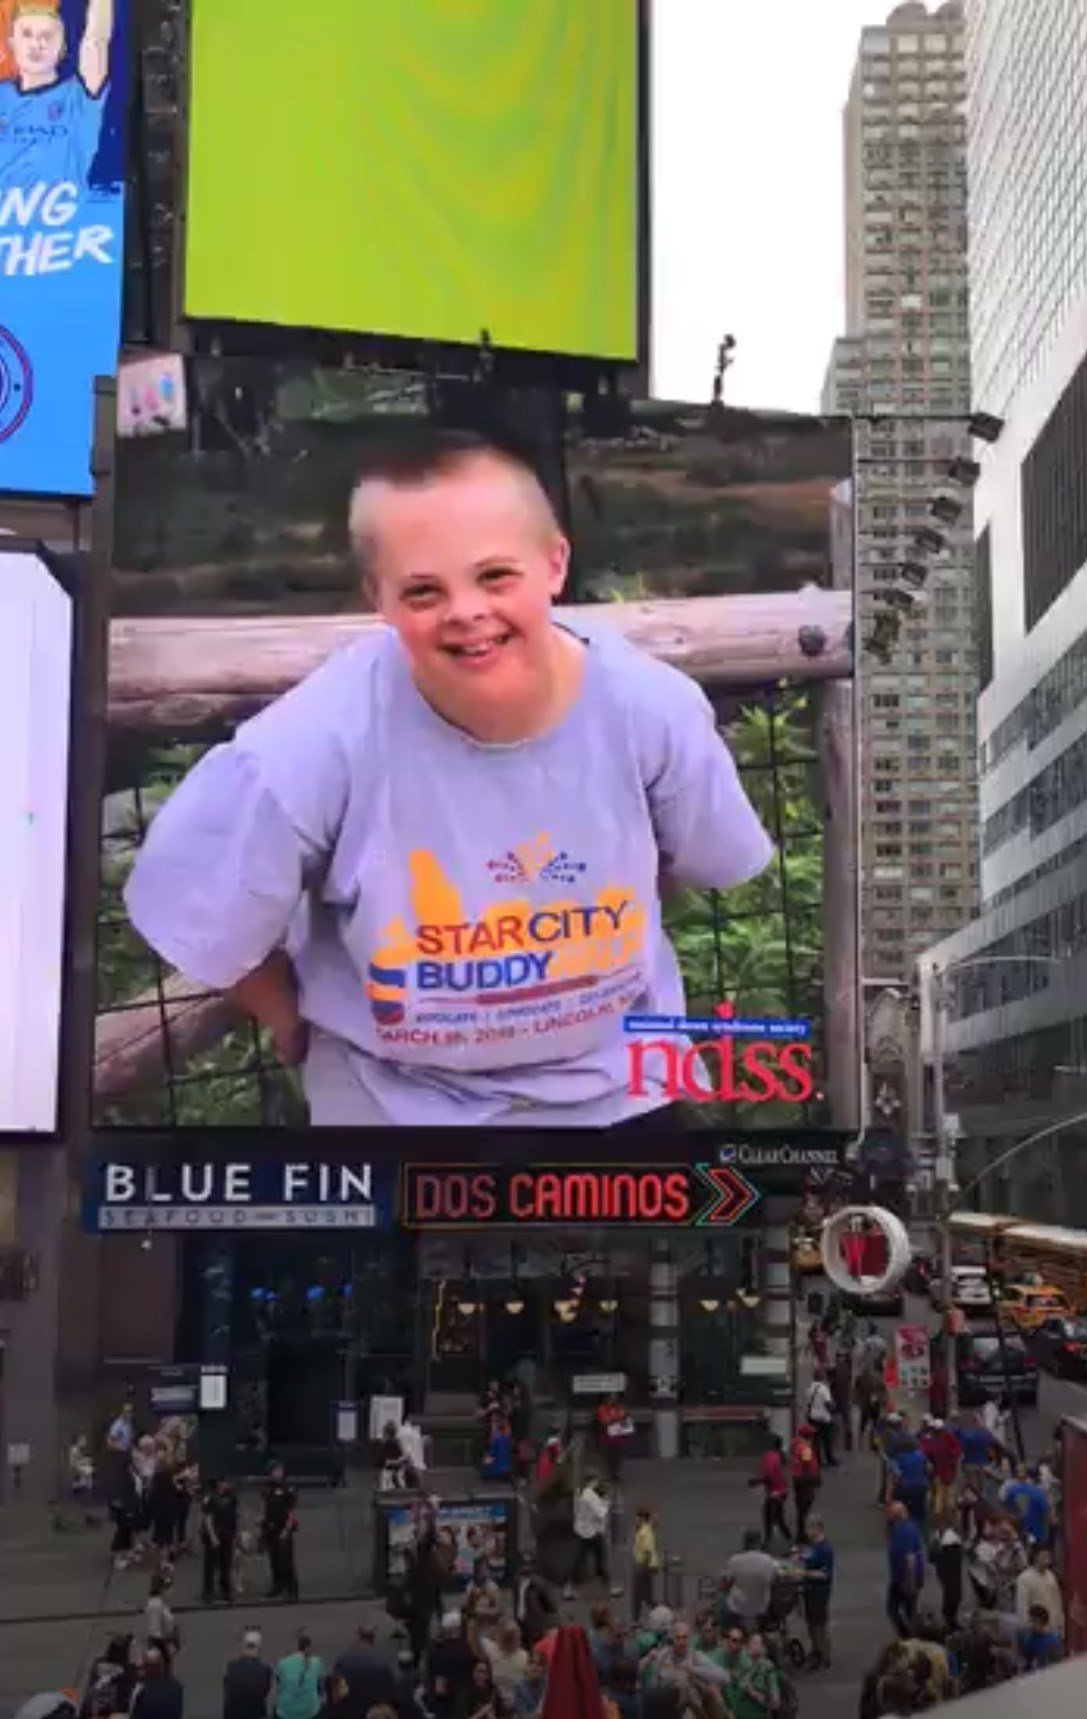 Nebraska 6th grader gets featured on Time Square big screen